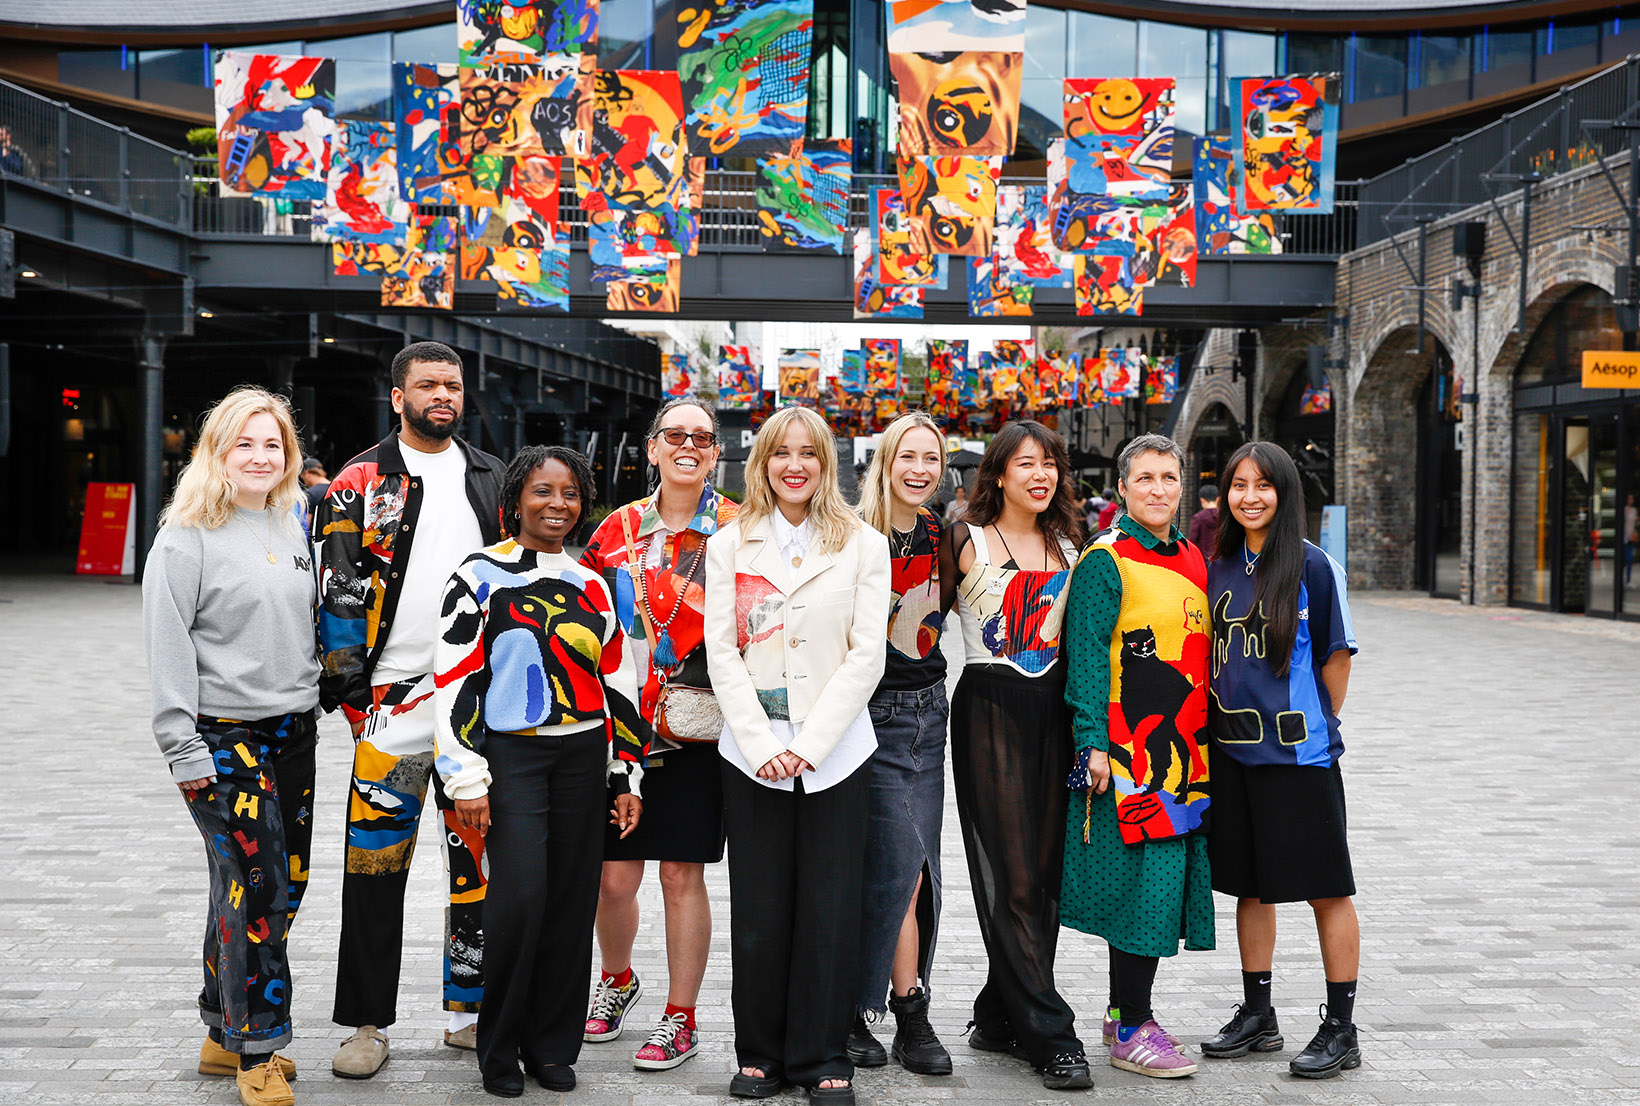 Image of Bethany Williams with members of The Magpie Trust, backed by the multicoloured flags.